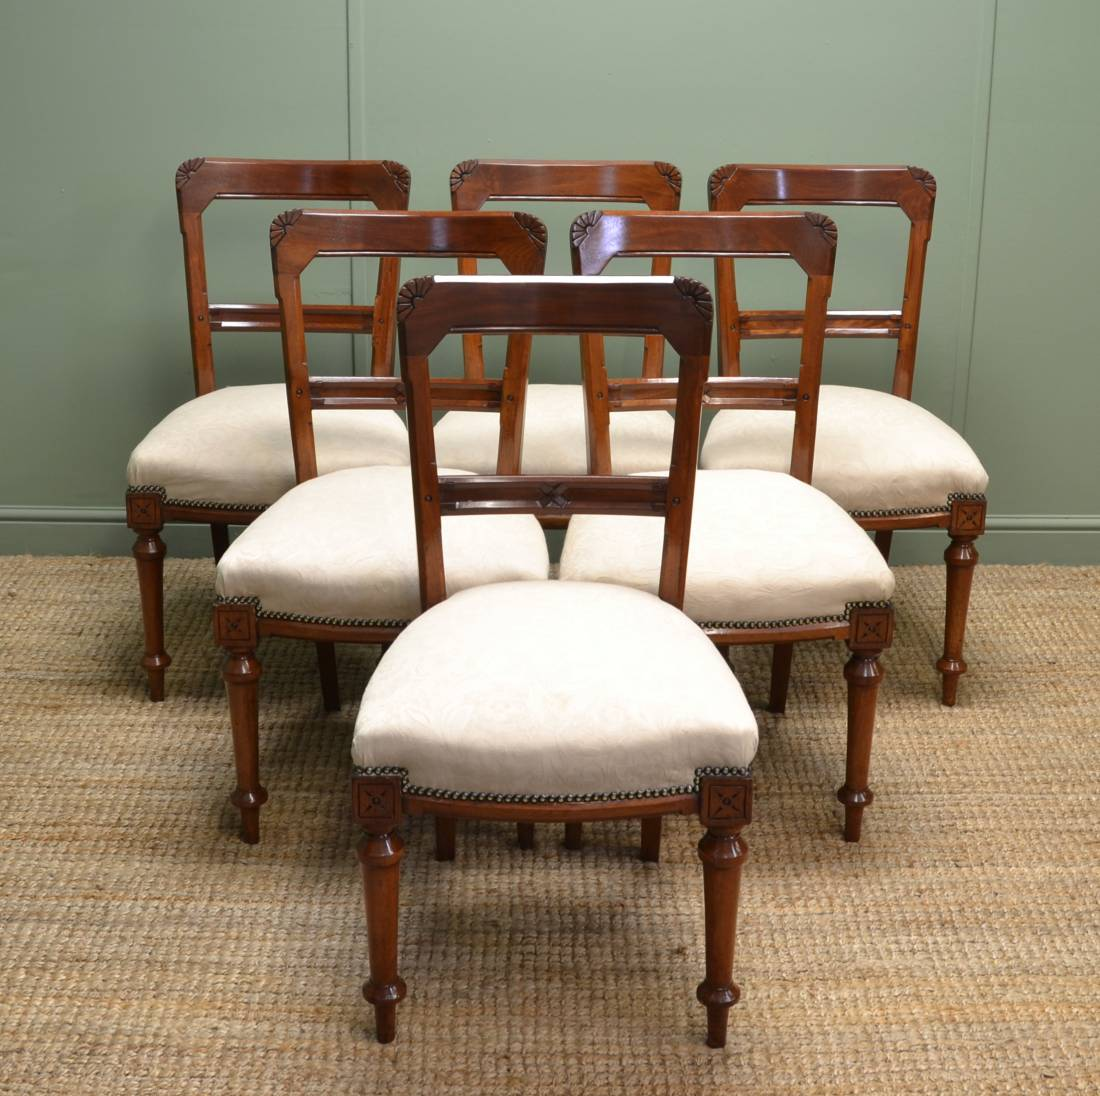 Antique victorian dining chairs - Set Of Six Antique Victorian Arts Crafts Walnut Dining Chairs